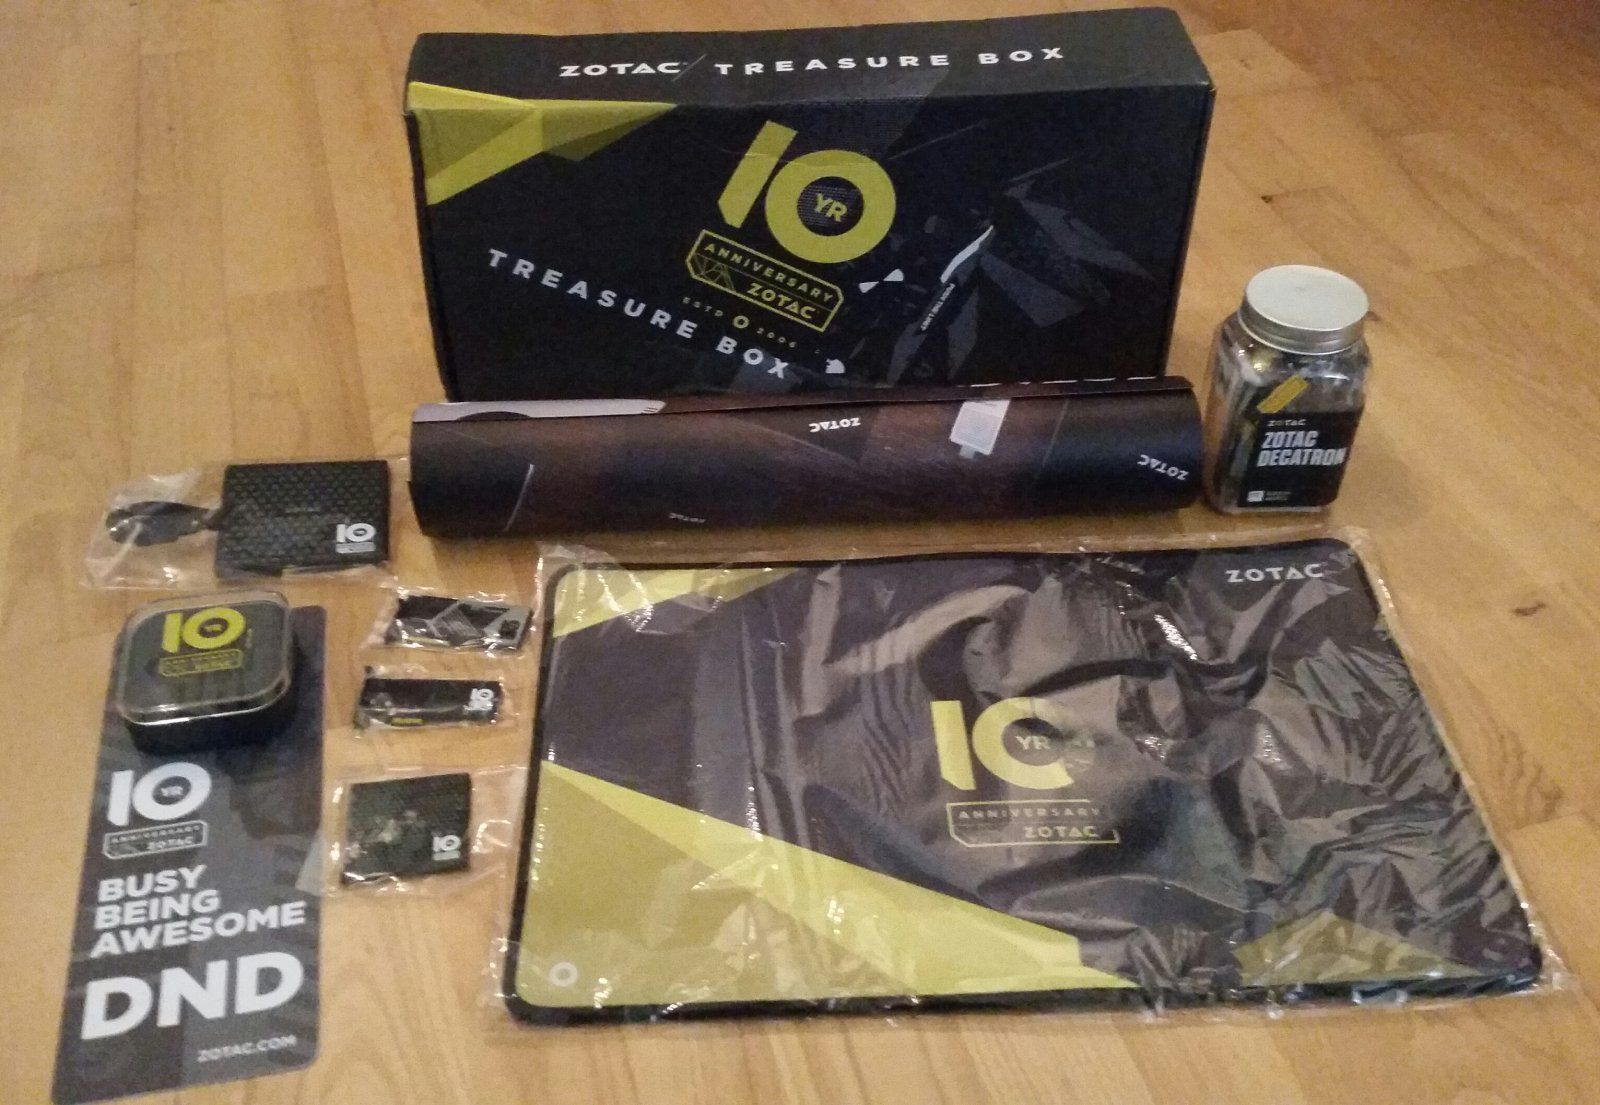 ZOTAC Treasure Box